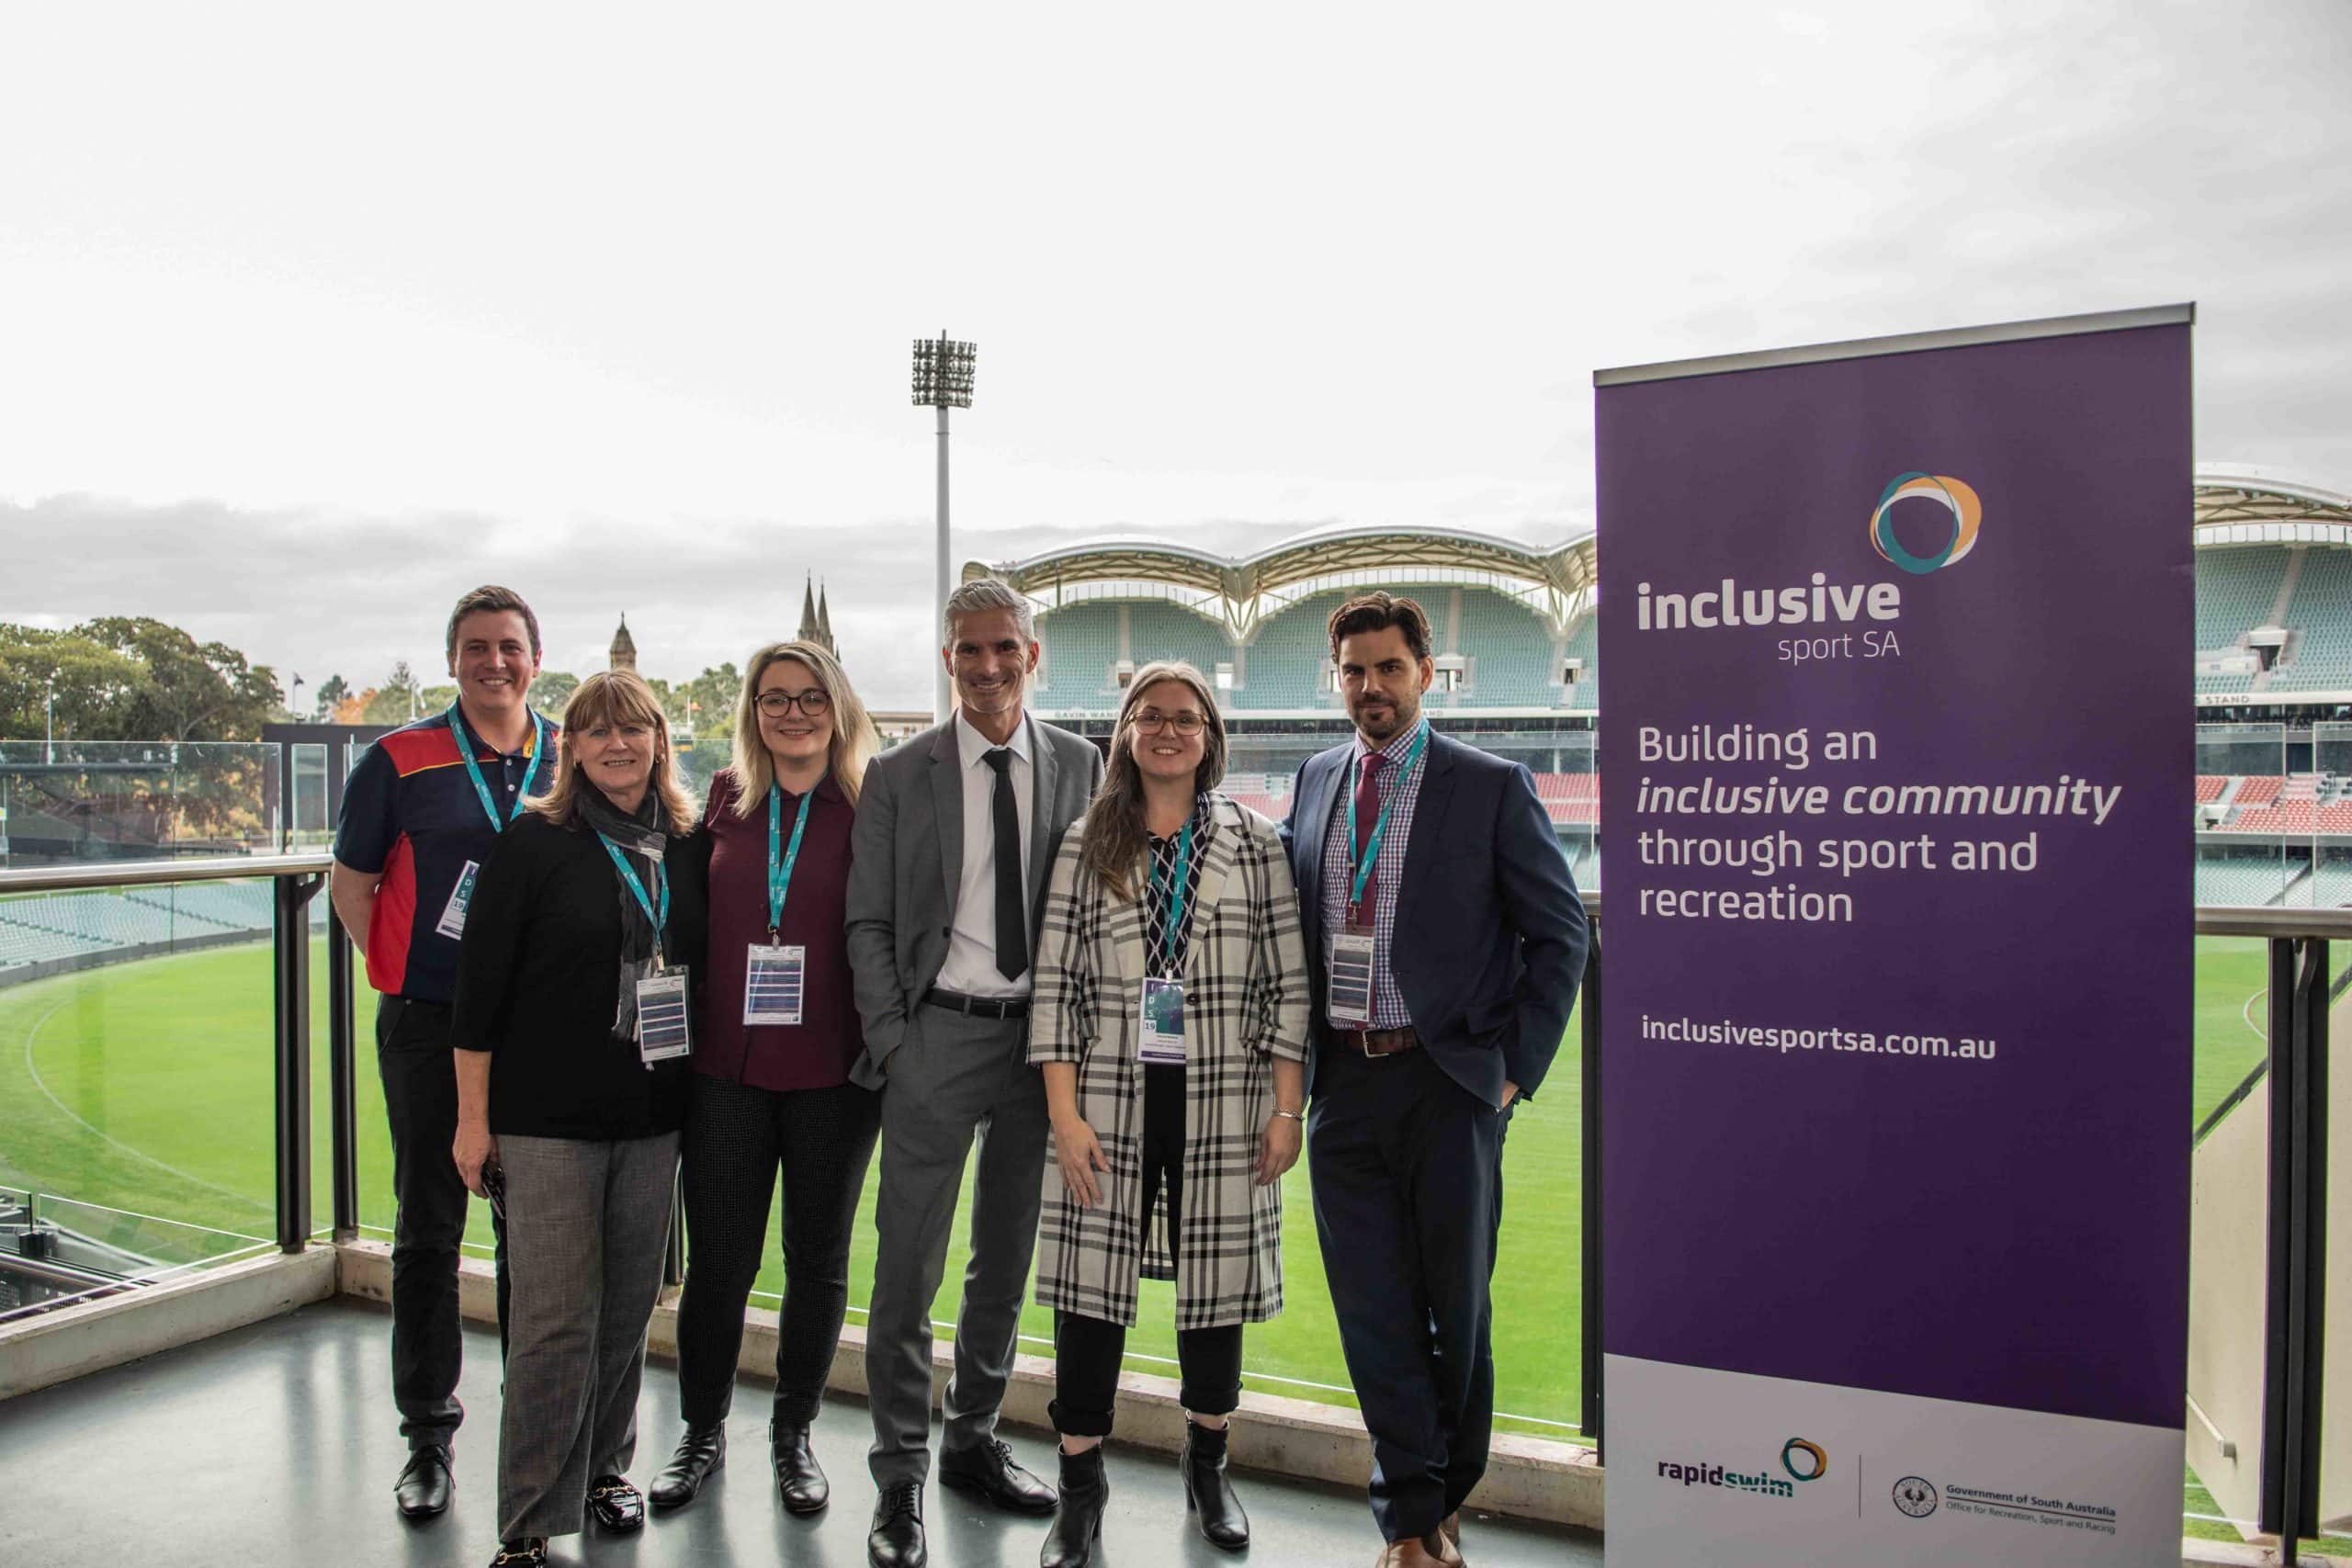 Group of six Active inclusion staff and collaborators standing on balcony with Adelaide Oval in the background.